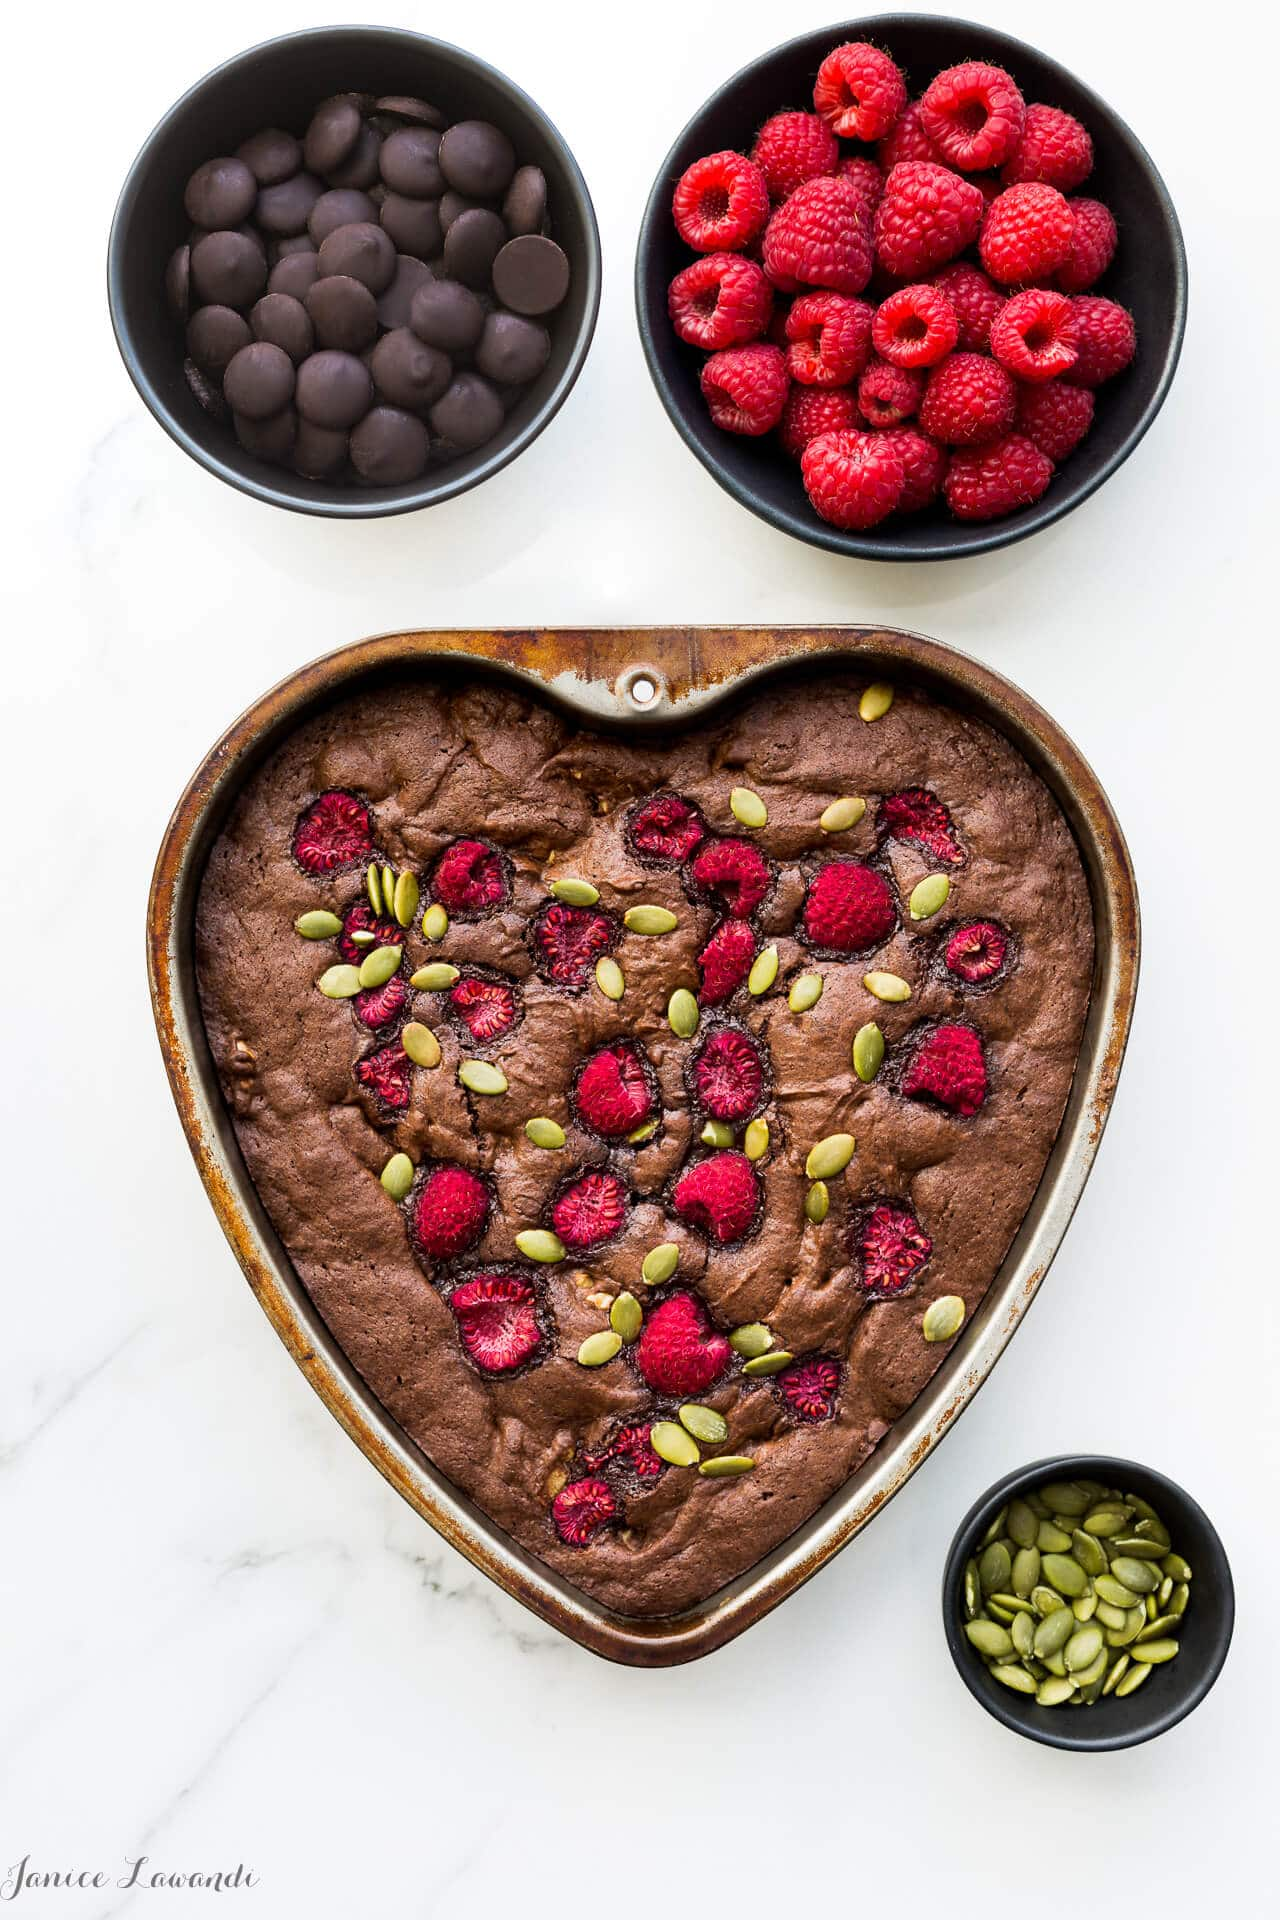 Brownies baked with walnuts and topped with raspberries and pumpkin seeds and baked in a heart shaped pan